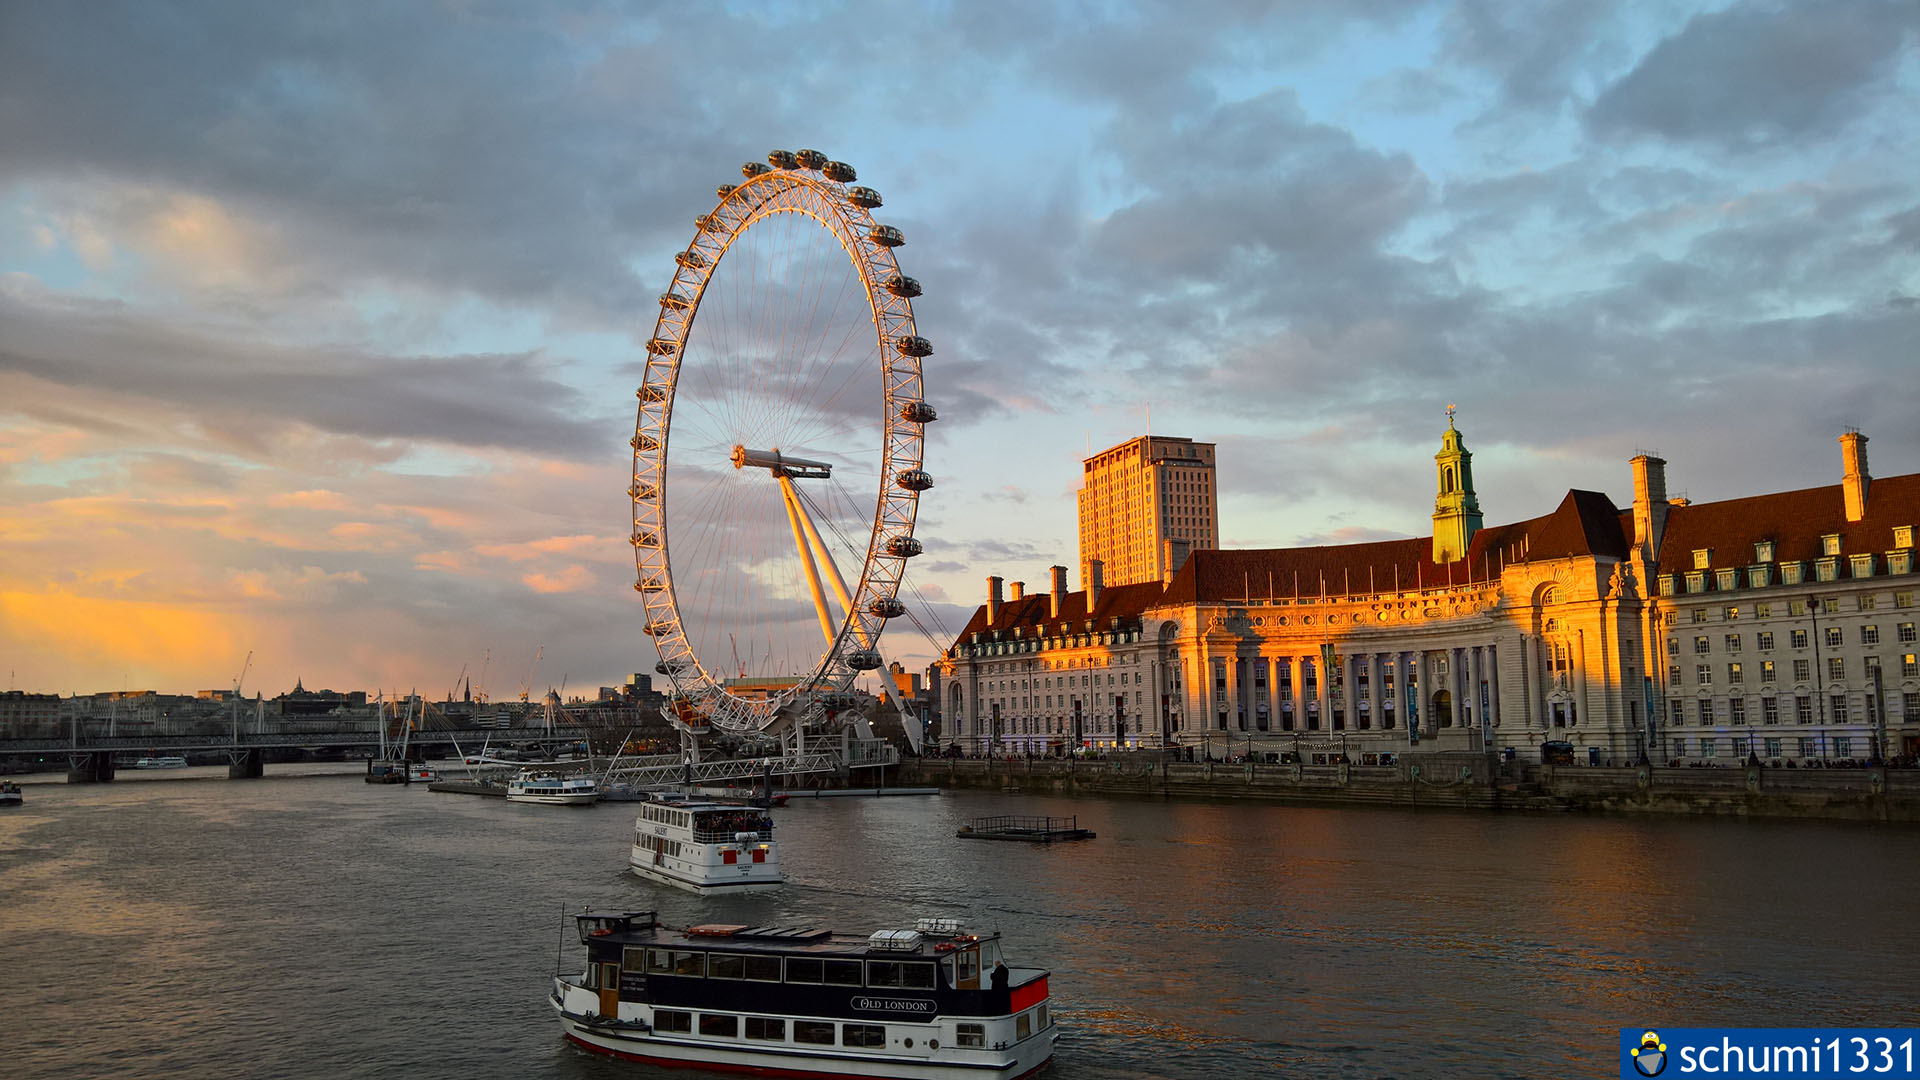 Das London Eye im Sonnenuntergang